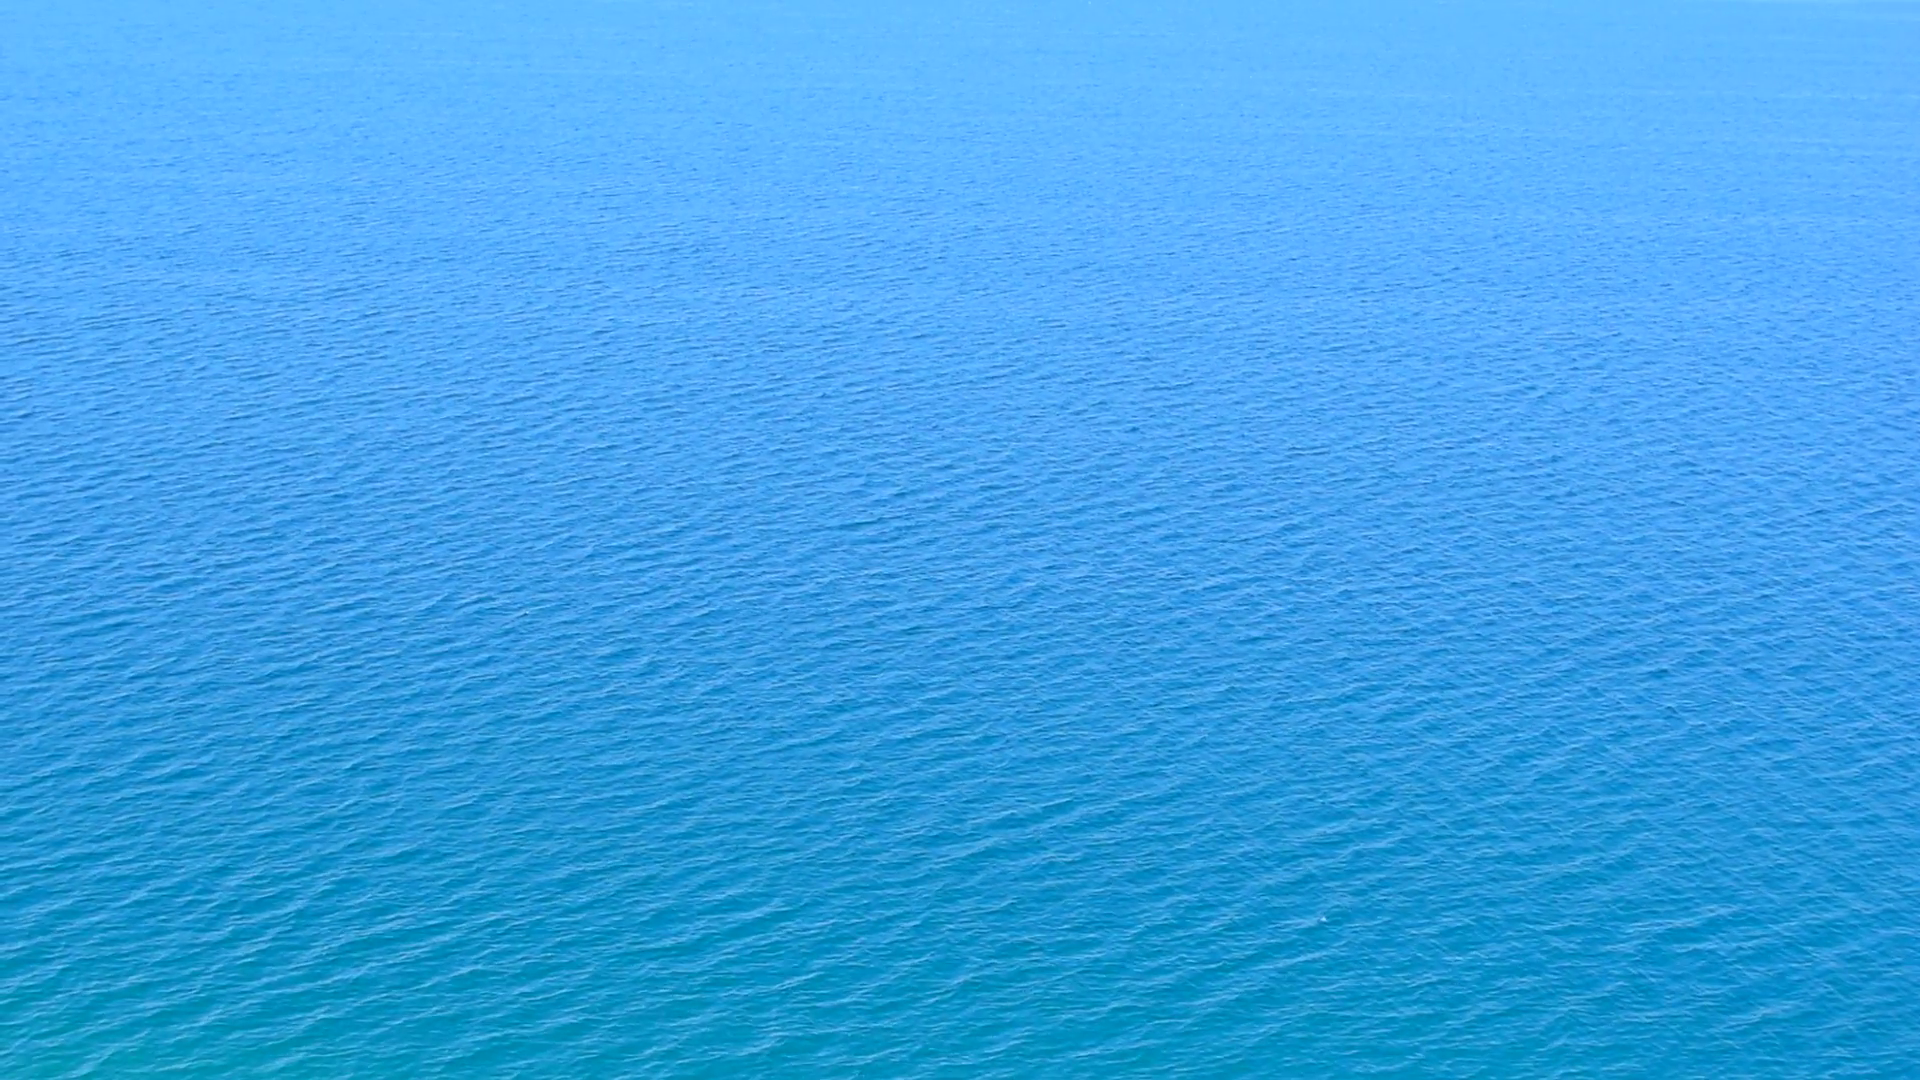 sea background png transparent sea background png images pluspng